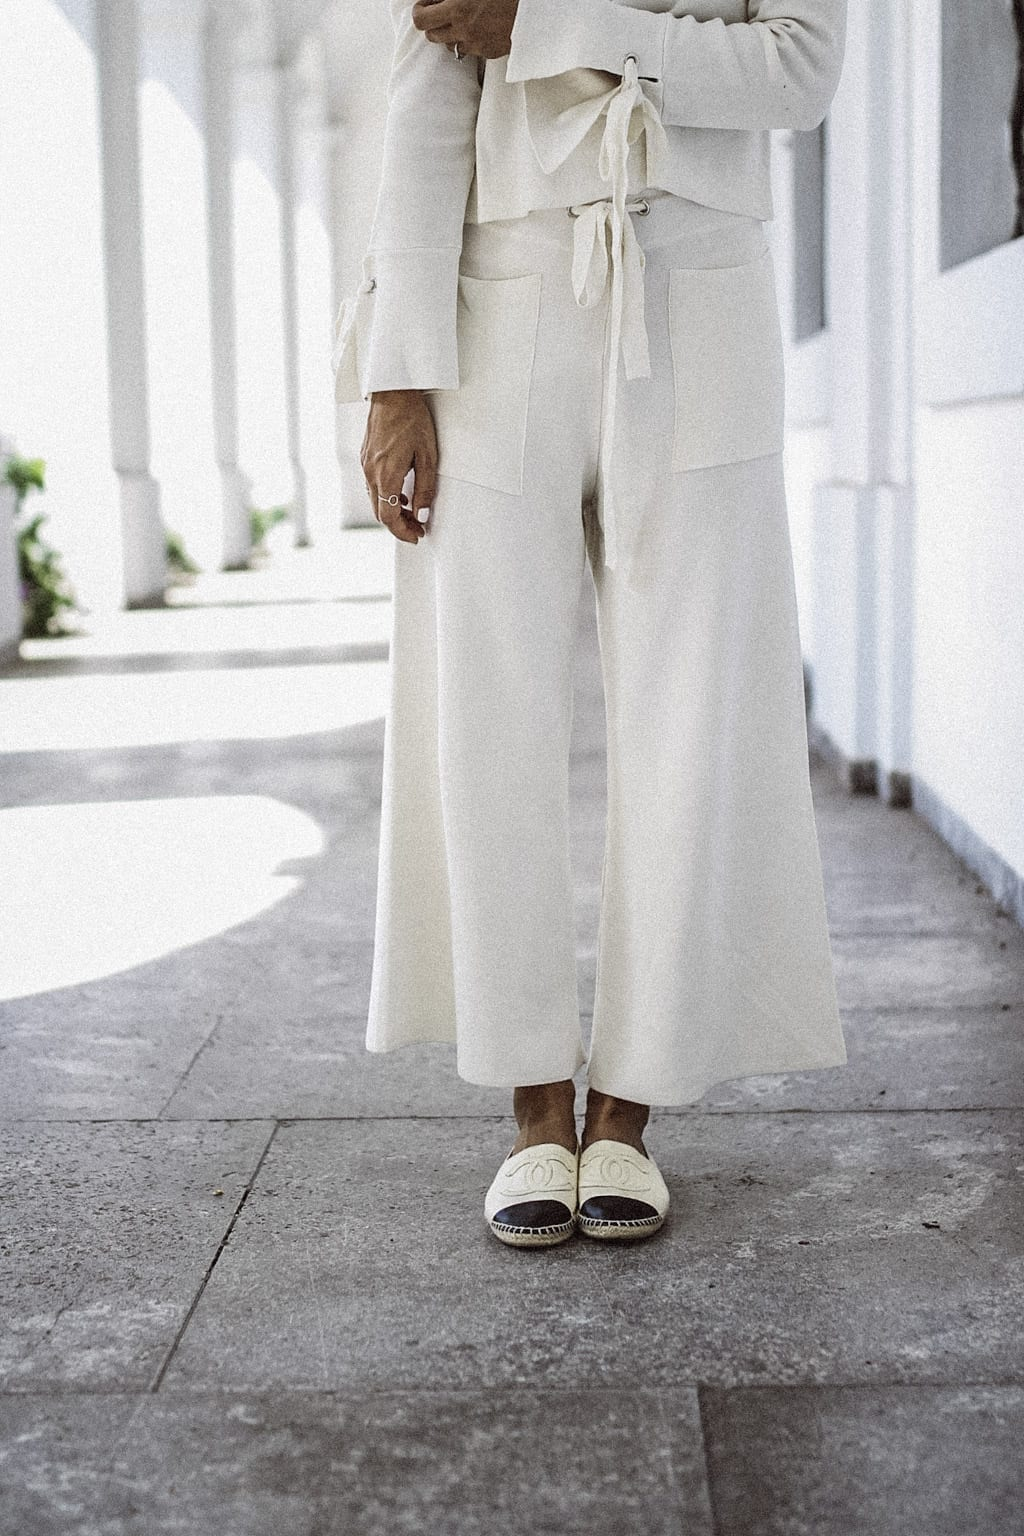 ck-constantlyk-com-white-overall-1456